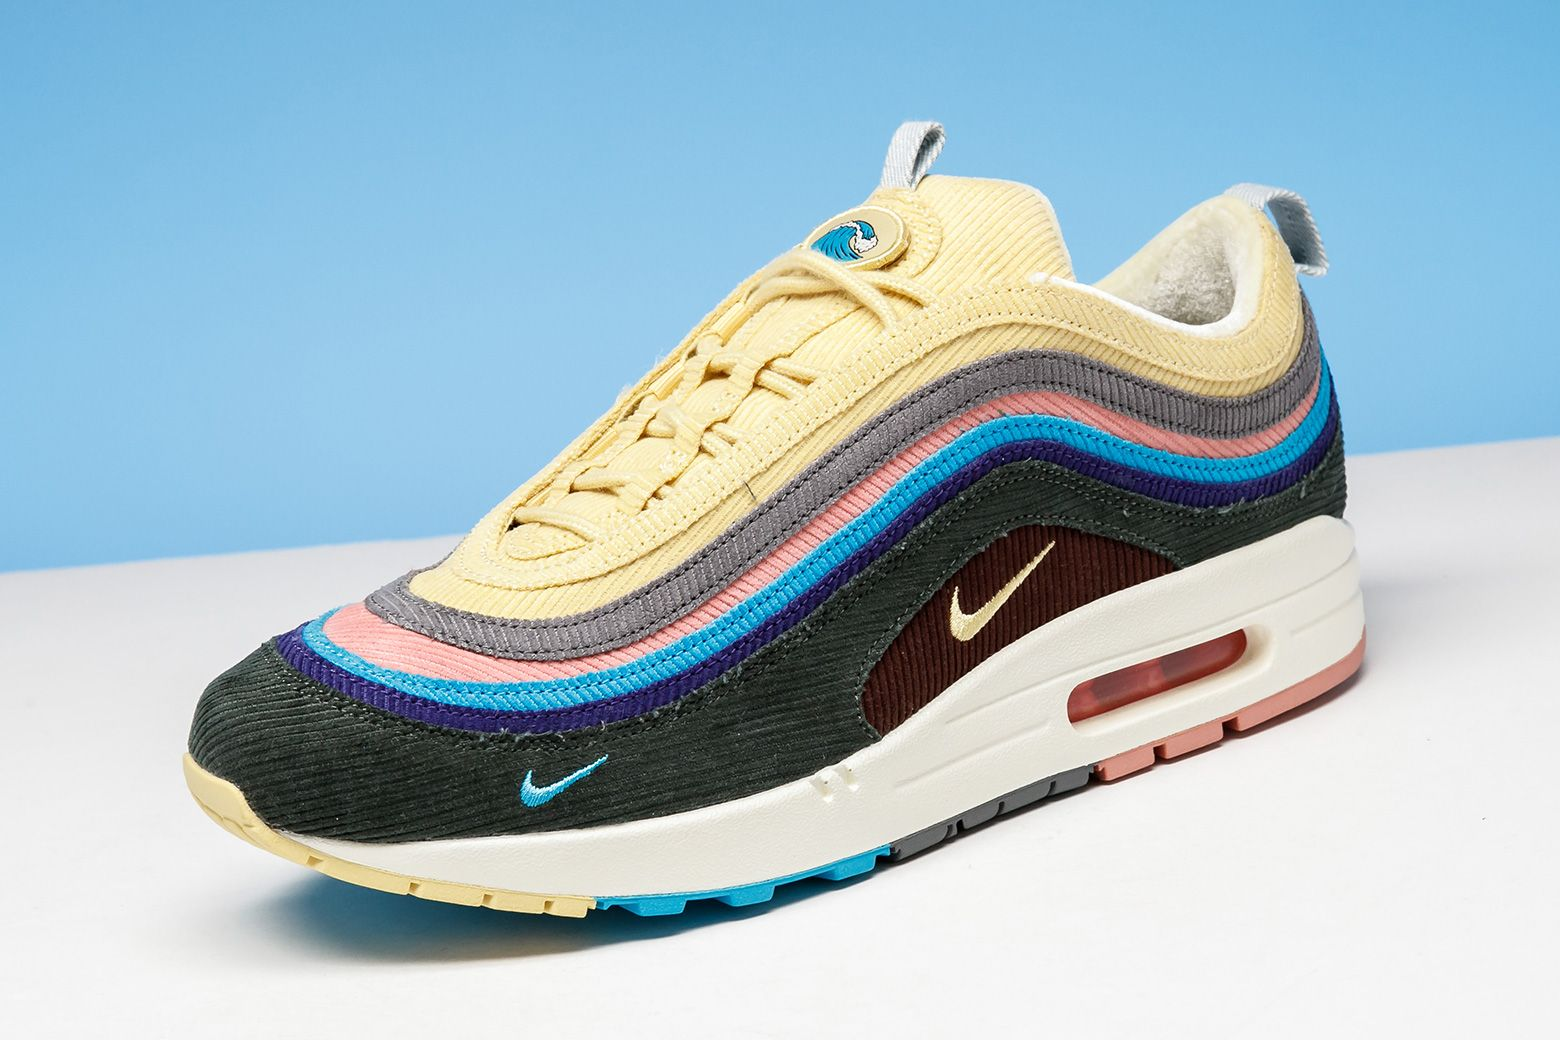 brand new 0c757 69582 The Sean Wotherspoon x Nike Air Max 97 1 Hybrid gets a fusion of Air